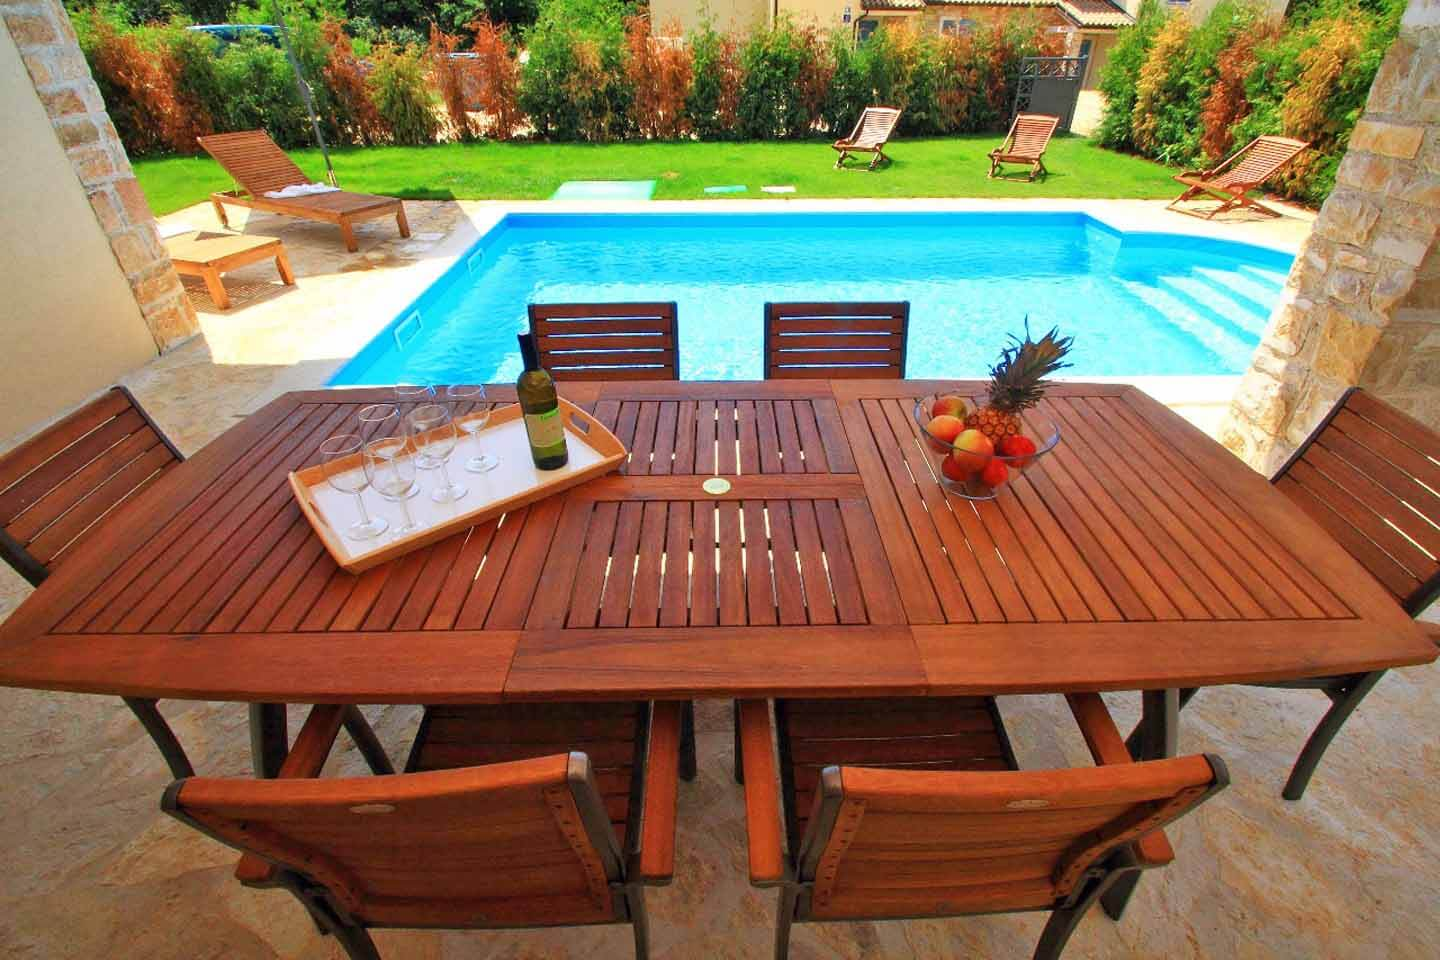 Outdoor dining table and pool